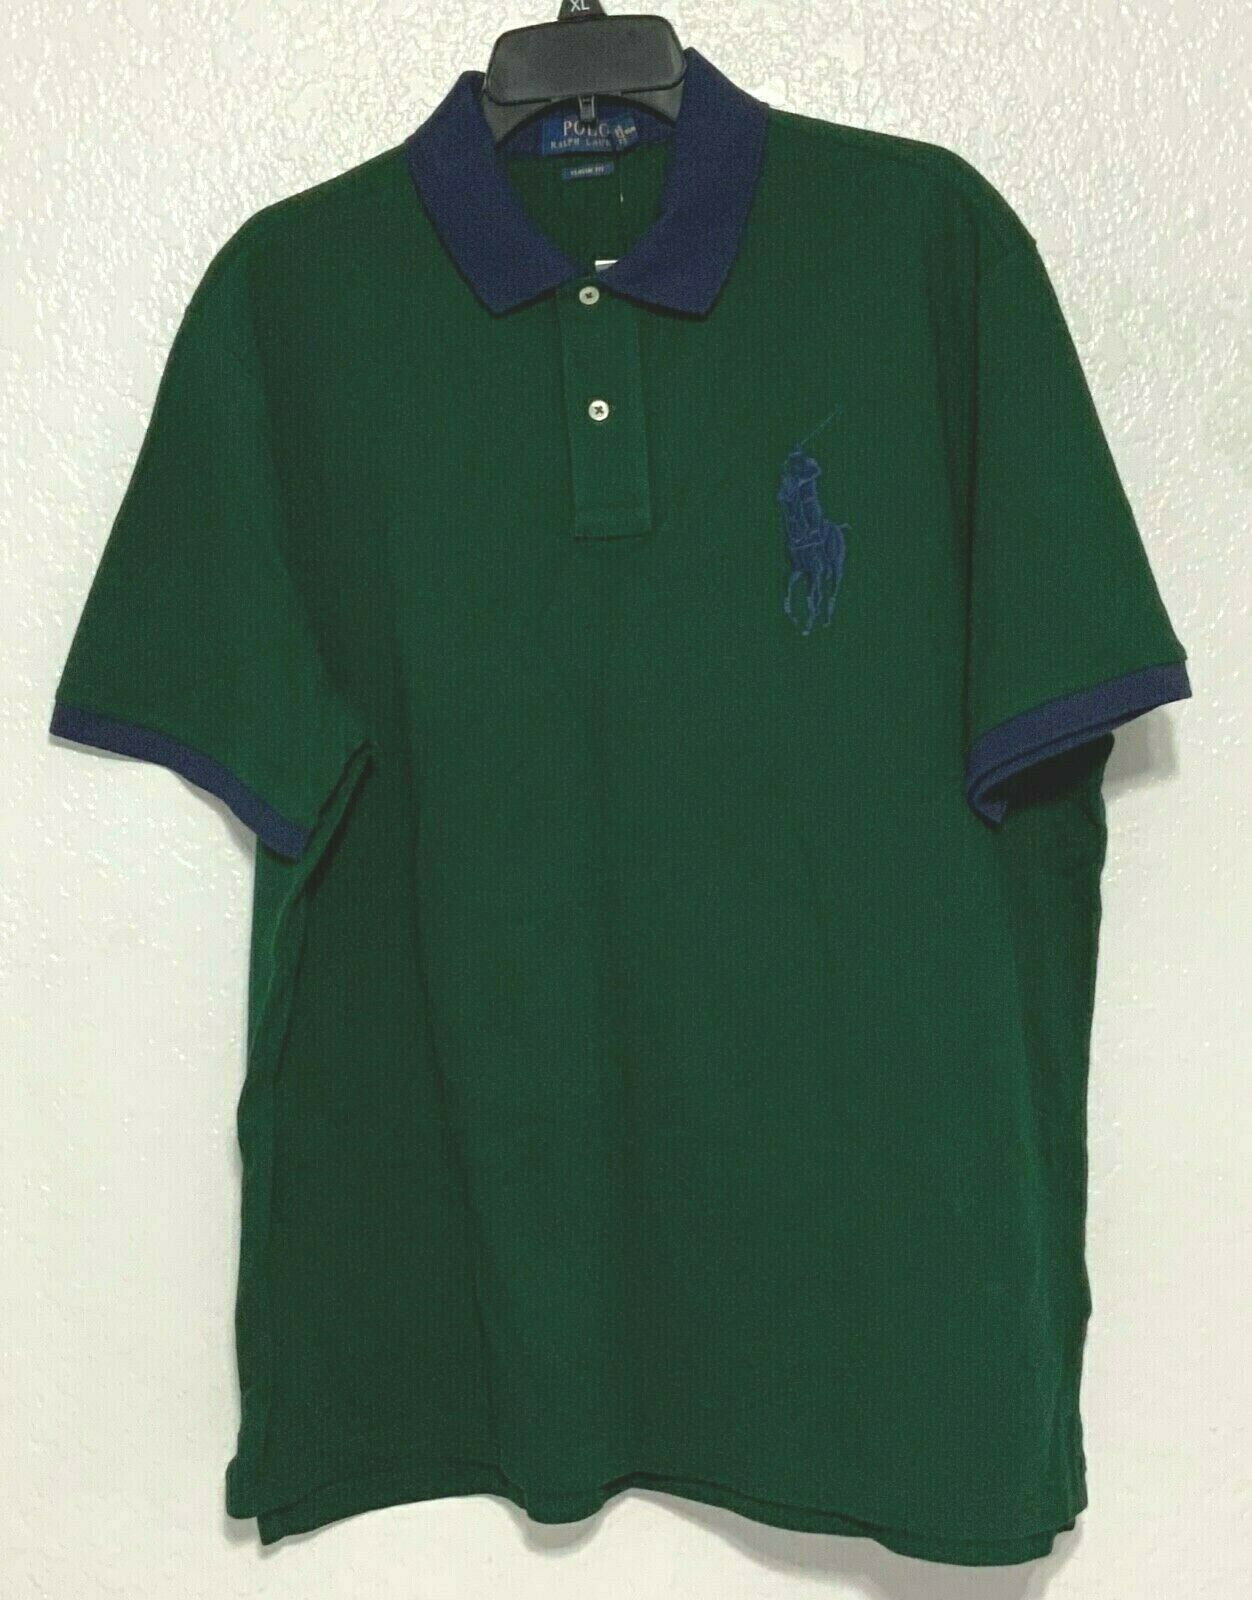 Polo Ralph Lauren Classic Fit Green Mesh Polo Shirt w// Purple Pony XXL NWT NEW